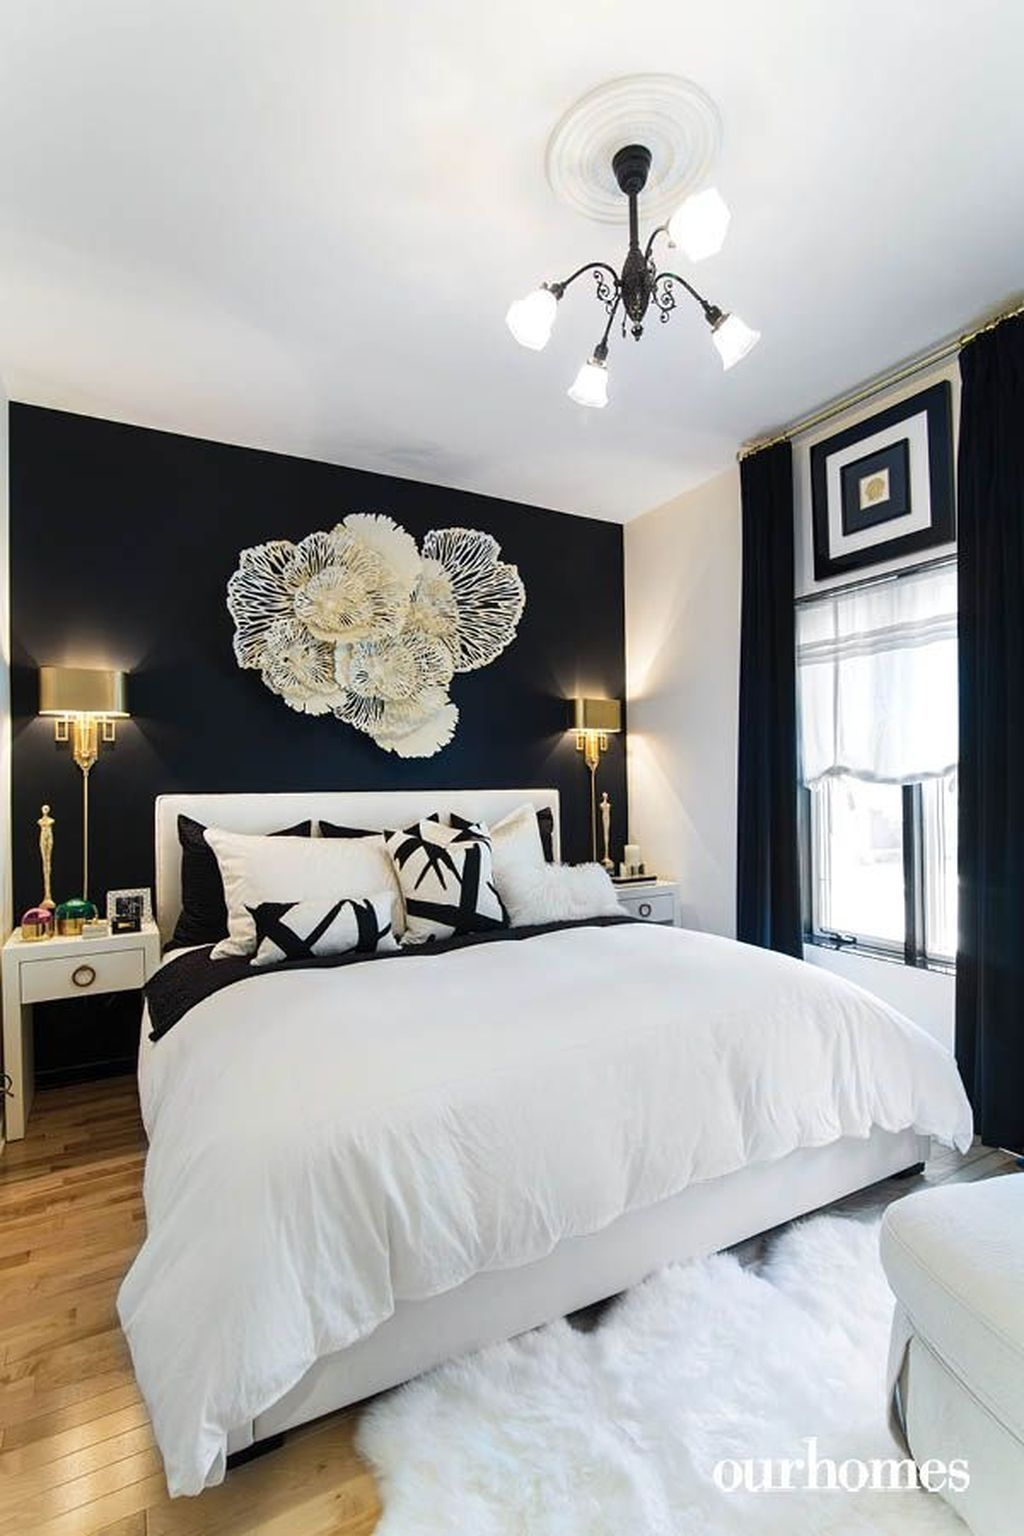 Patterns And Designs Just Like In Any Other Interior Parts Of The House Your Master Bedroom Dese Blue Master Bedroom Beige Bedroom Decor Black Walls Bedroom